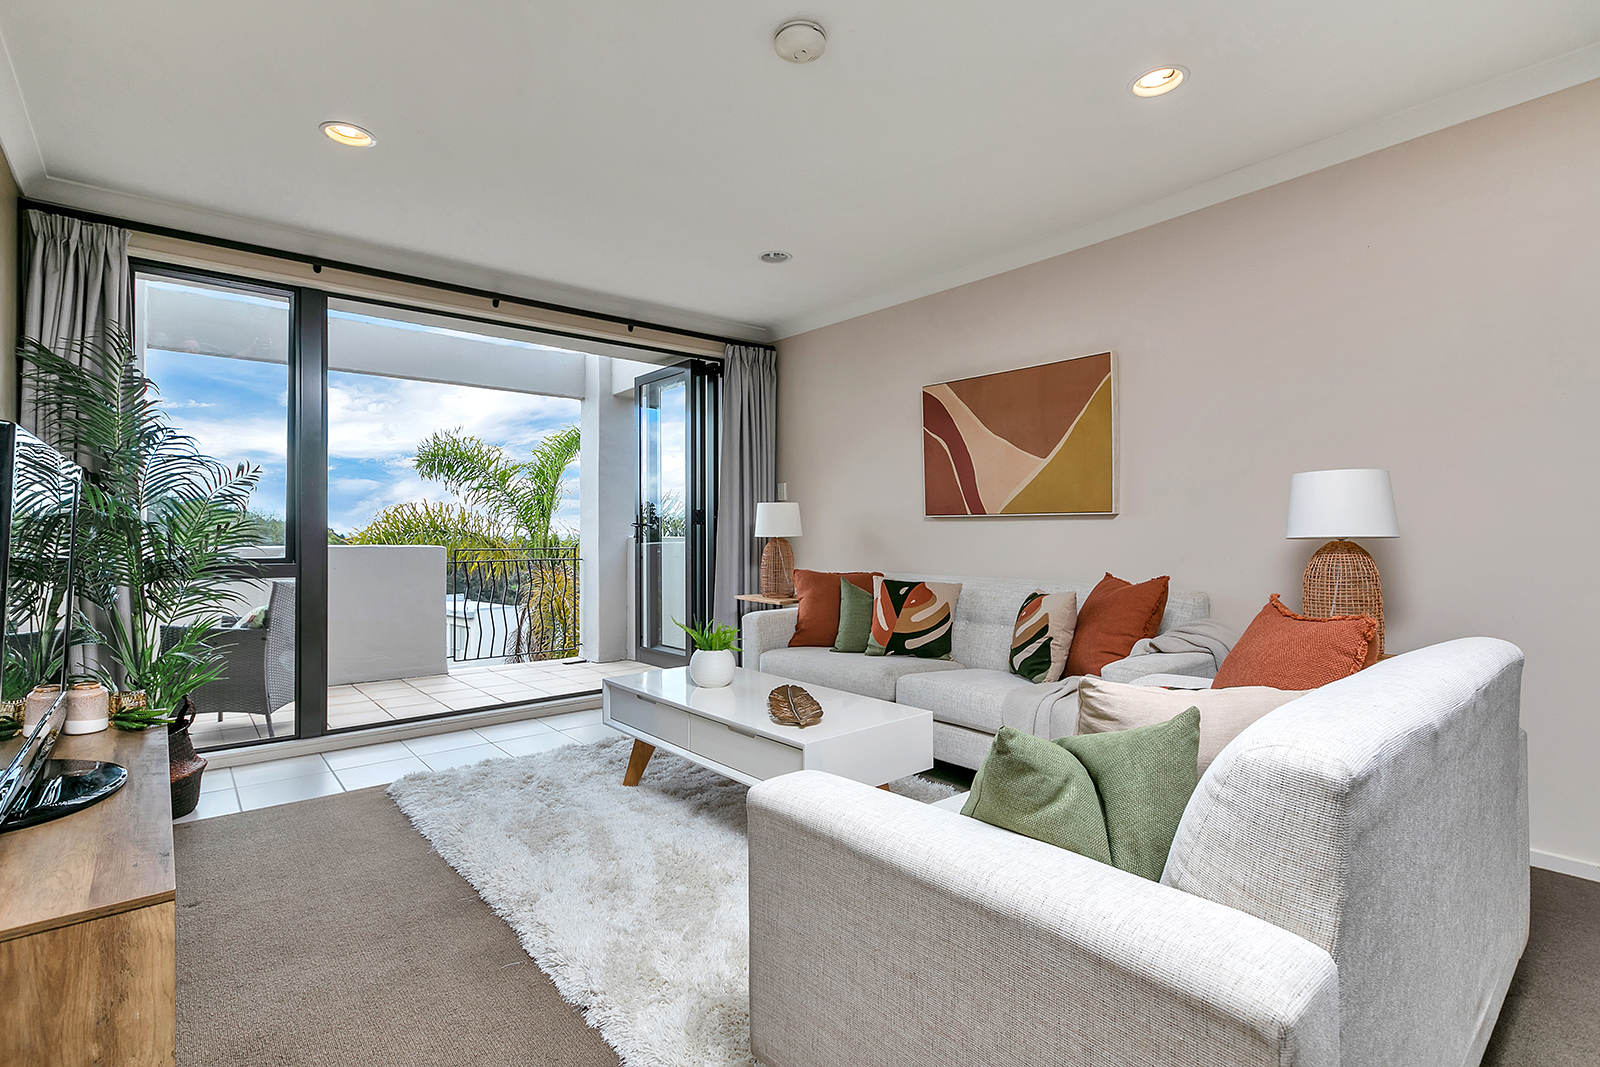 AFFORDABLE, STRATEGIC. CAREFREE LIVING WITH VIEWS